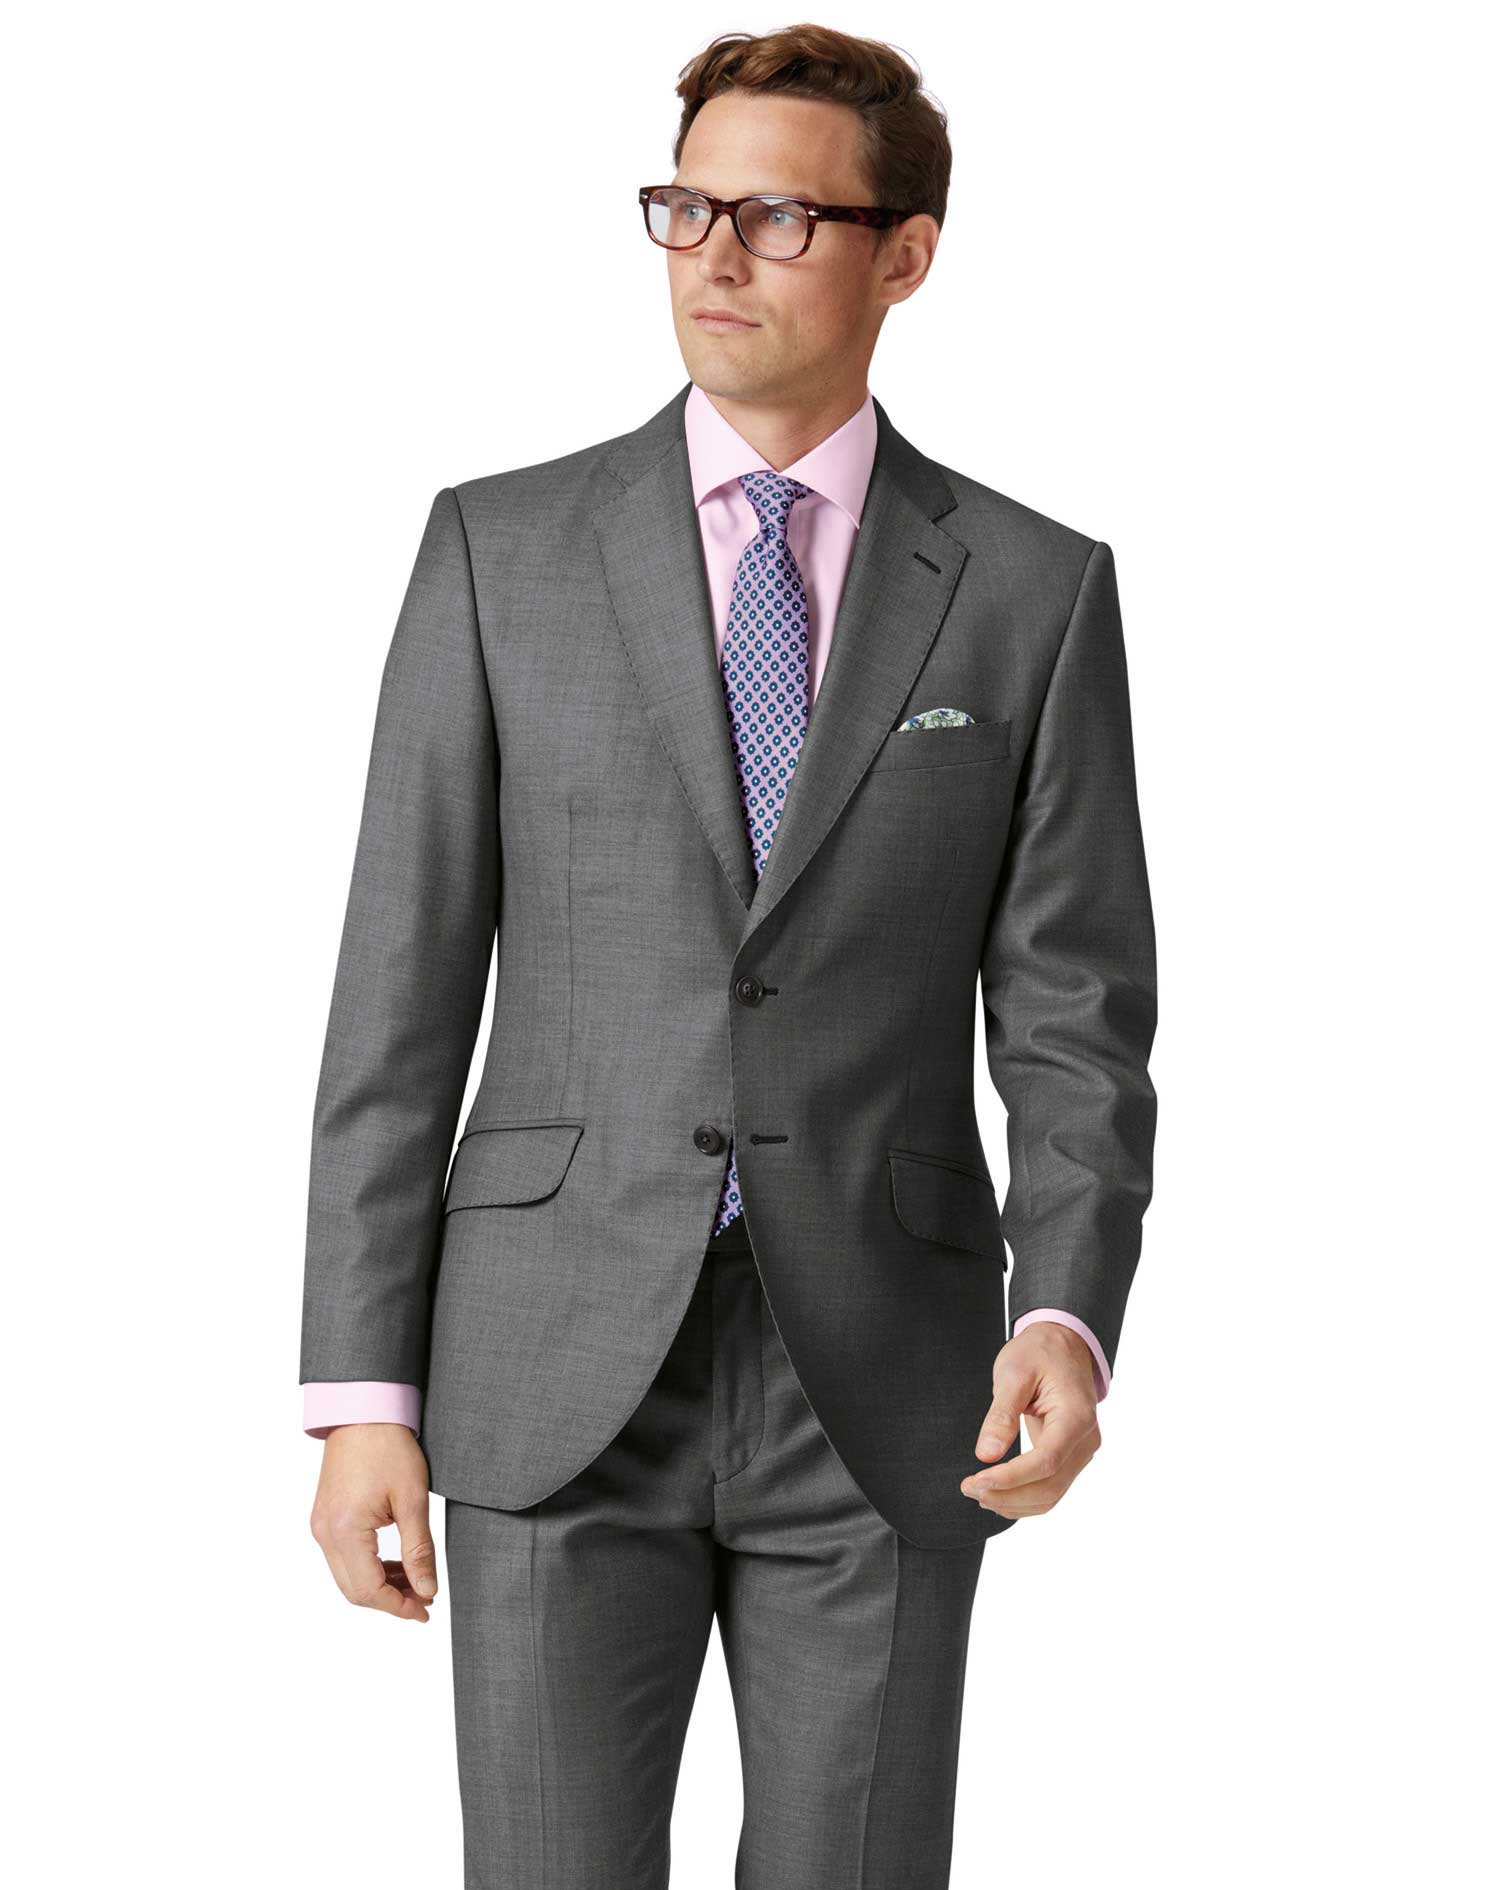 Light Grey Slim Fit Wool With Cashmere Italian Suit Jacket Size 44 Regular by Charles Tyrwhitt